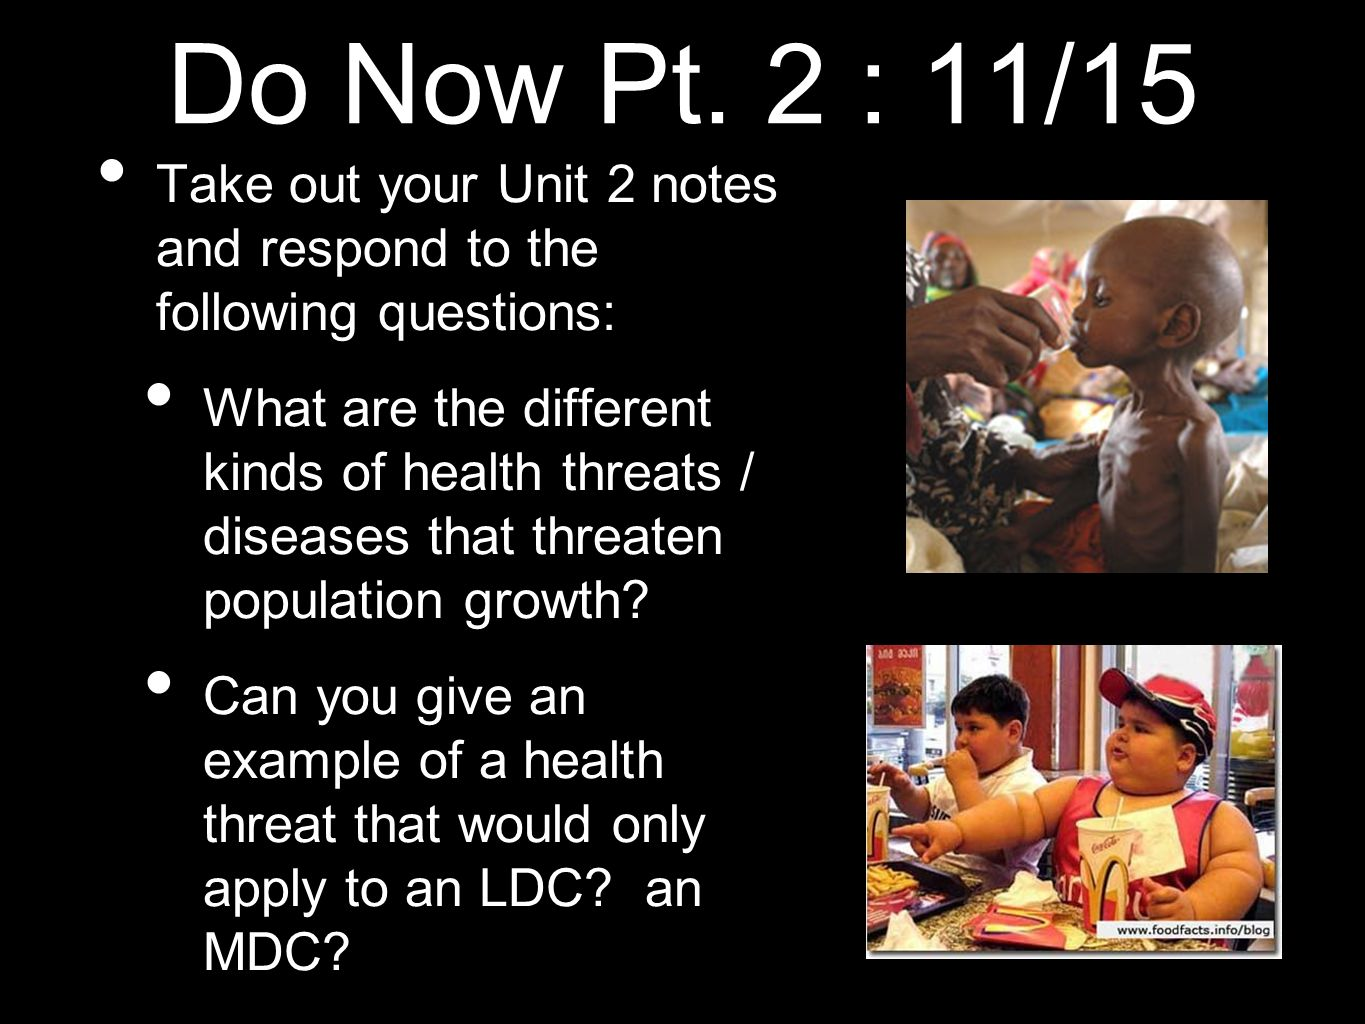 Do Now Pt. 2 : 11/15 Take out your Unit 2 notes and respond to the following questions: What are the different kinds of health threats / diseases that